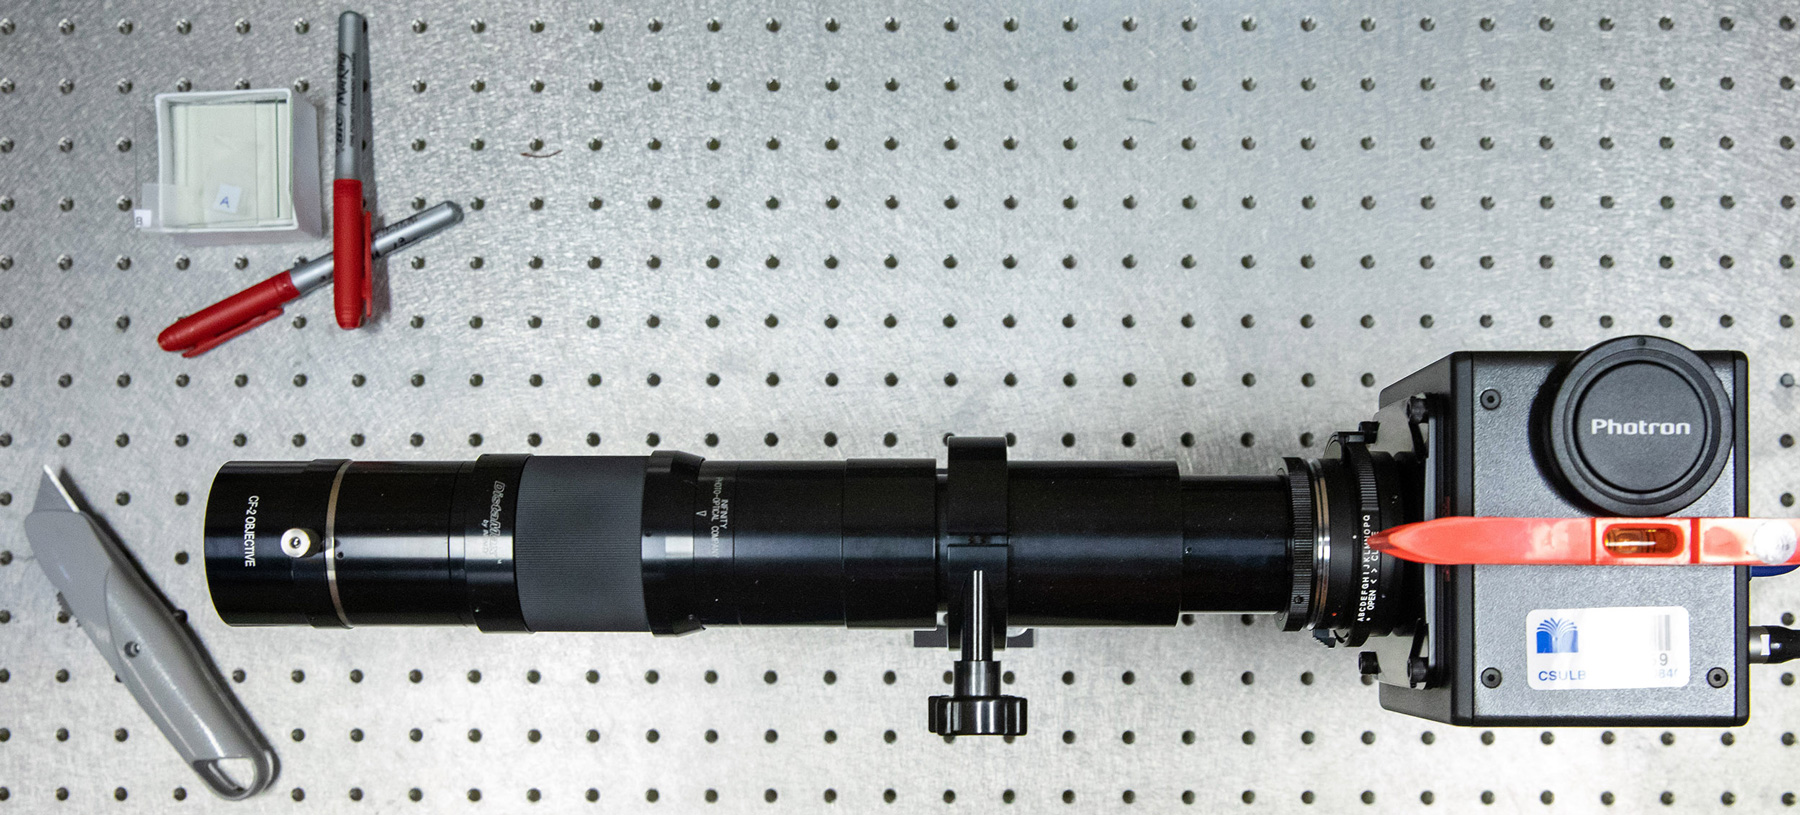 A camera with a long-distance microscope lens used to capture high-speed, high-resolution video for data analysis.